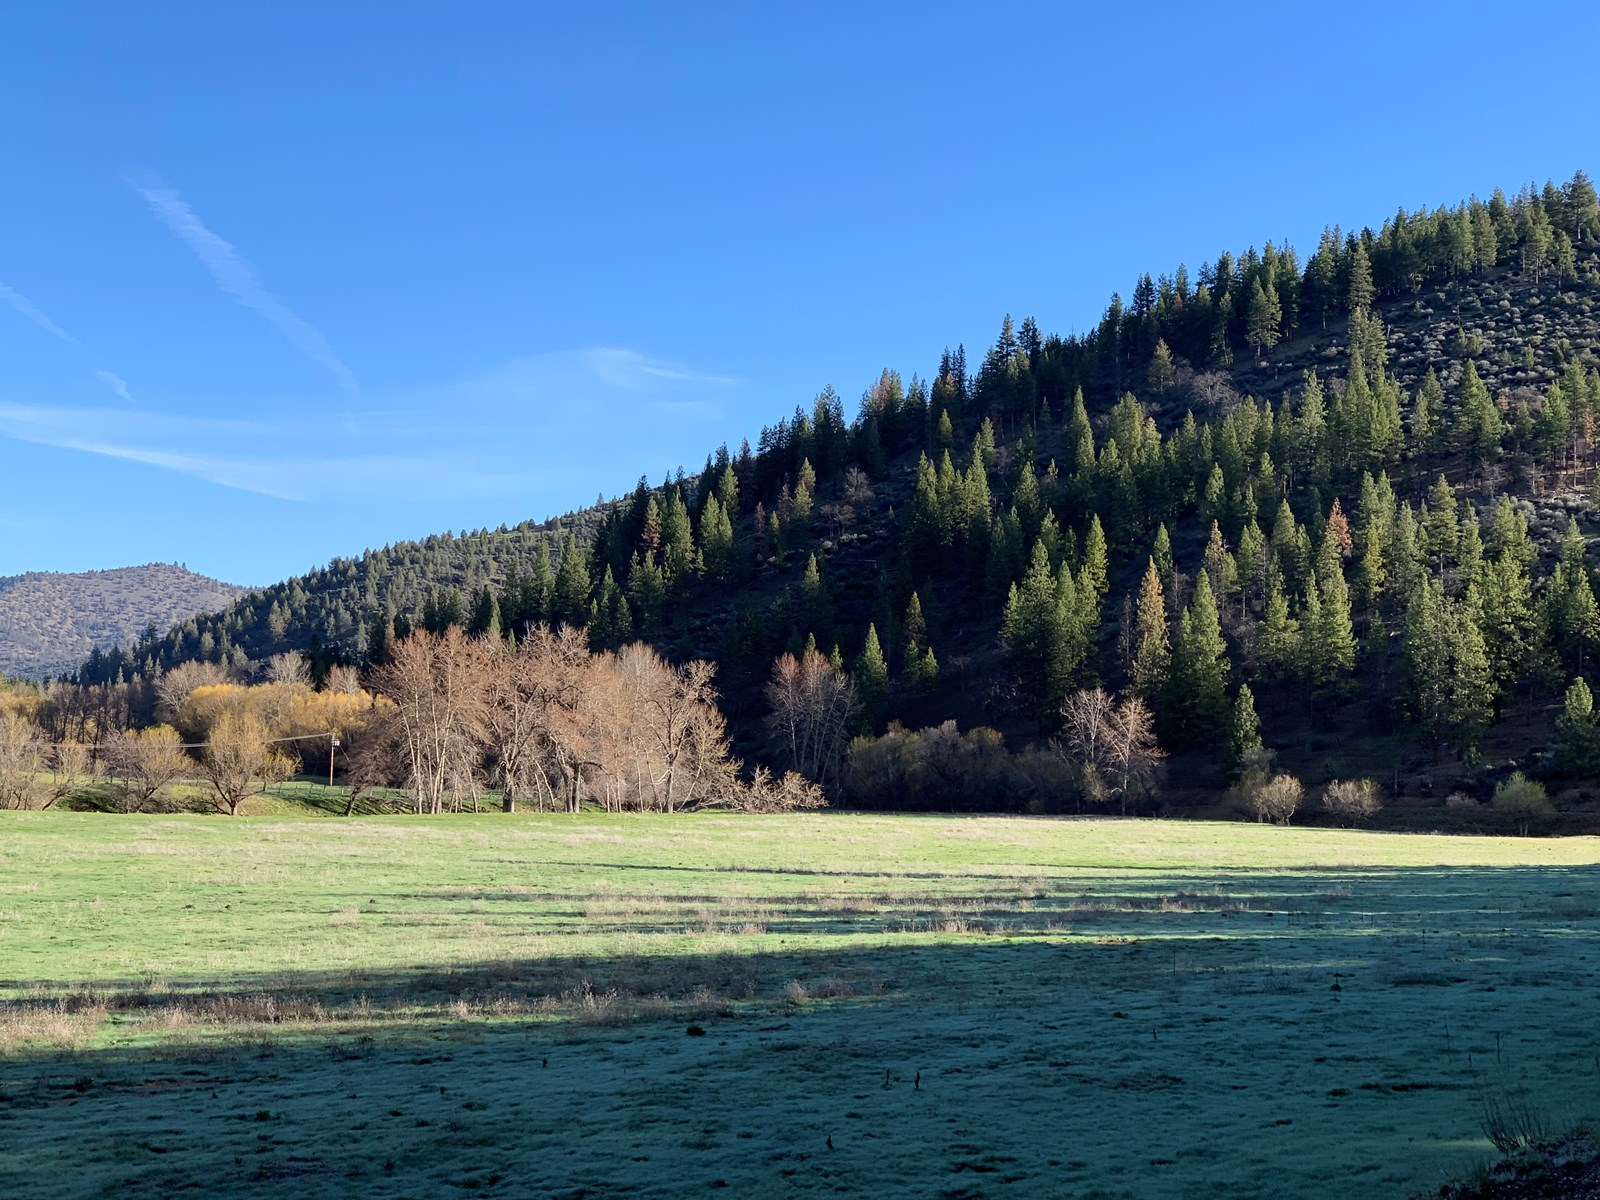 Land for Sale in Northern Calfornia, Siskiyou County